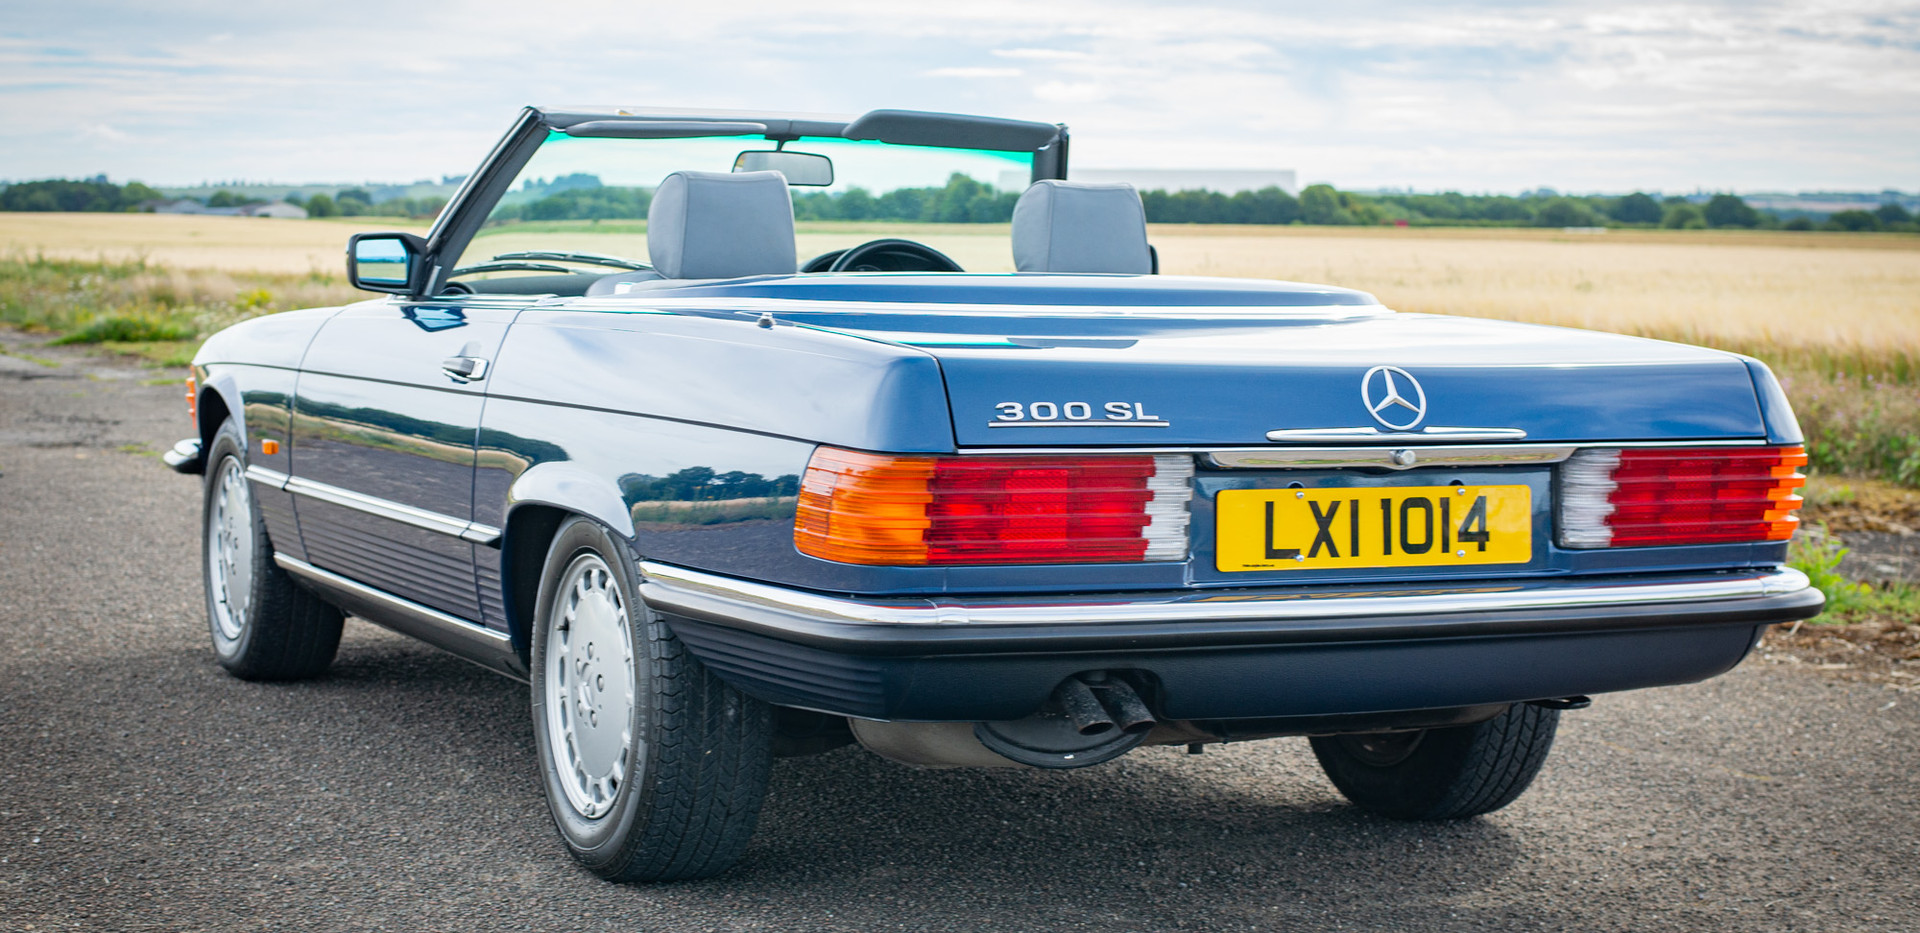 300SL 107 Blue for sale Uk london-13.jpg